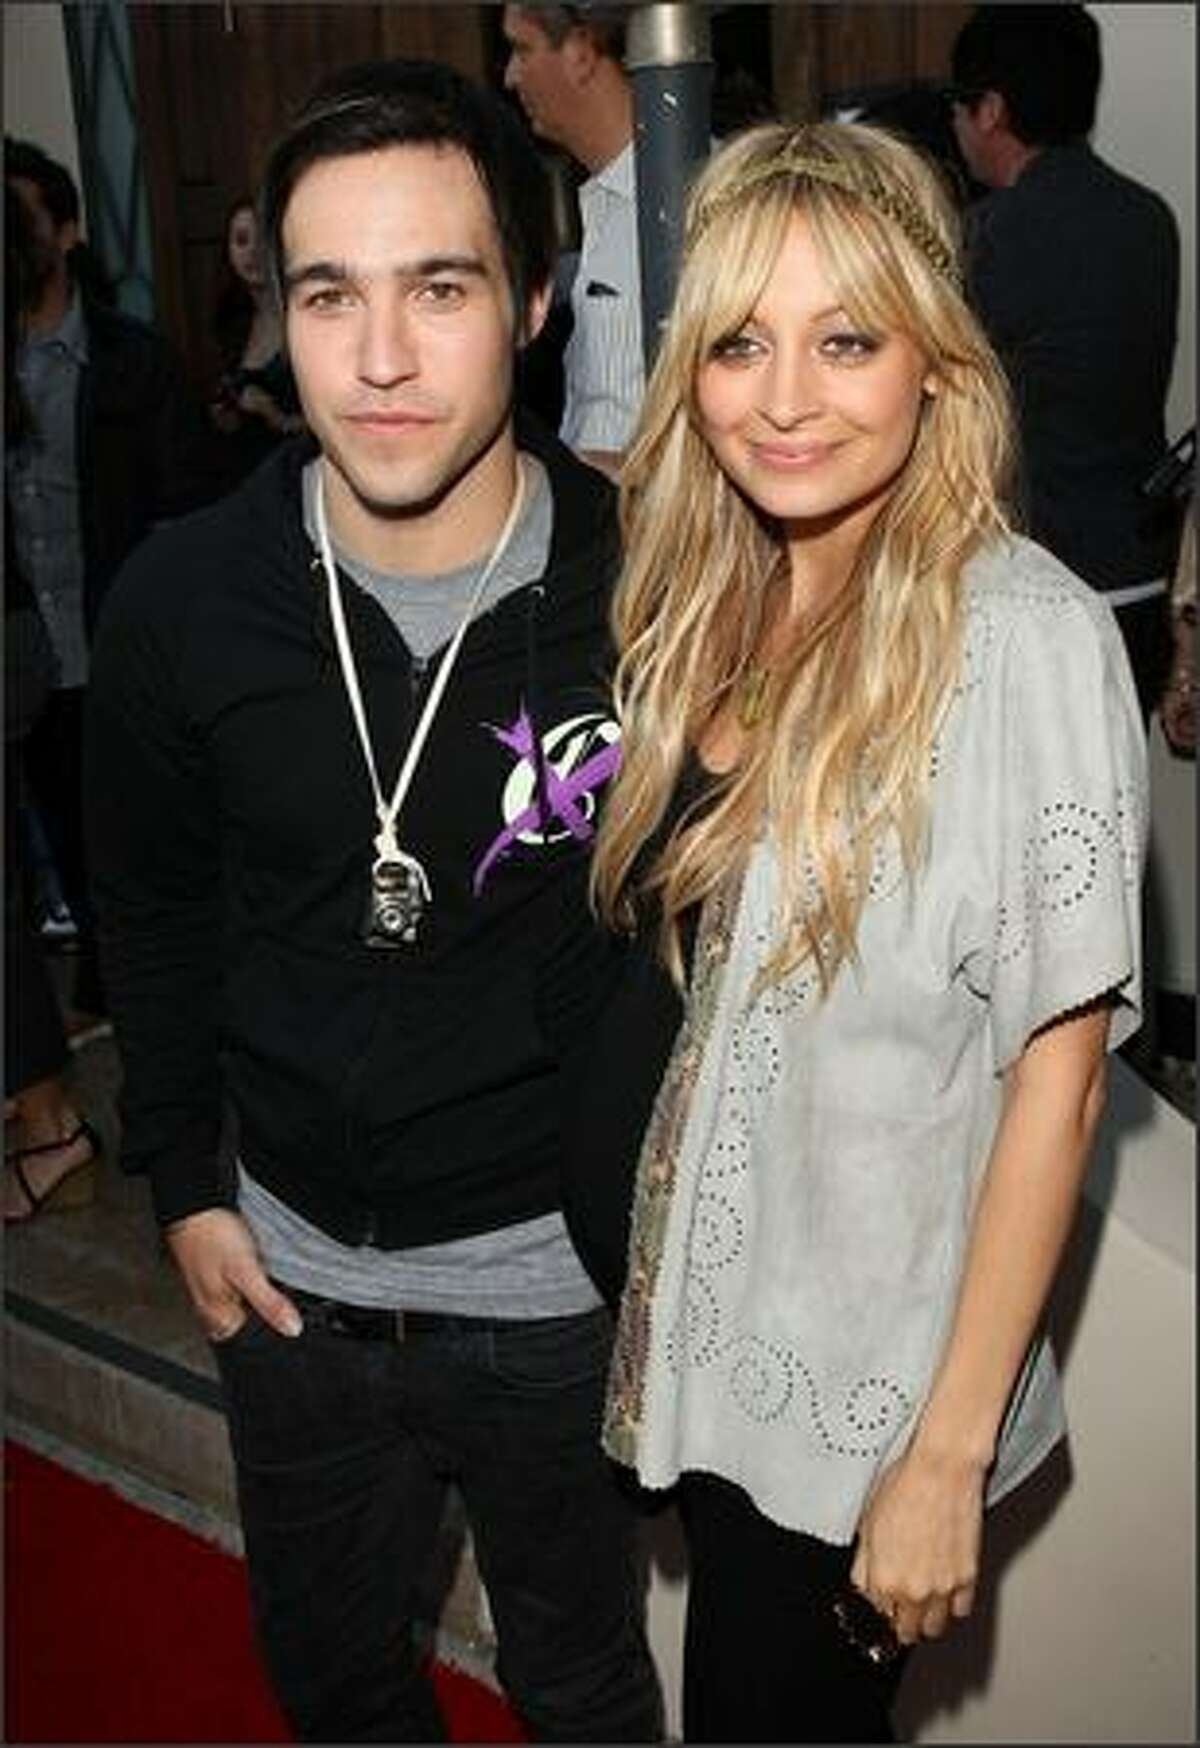 Musician/designer Pete Wentz and designer Nicole Richie co-host the House of Harlow, Clandestine Industries and Switch Boutique fashion show held at Boulevard3 in Hollywood, Calif., on Thursday, June 4, 2009. House of Harlow is Richie's jewelry line, Clandestine Industries is Wentz's clothing line and Switch Boutique is a Beverly Hills fashion store.